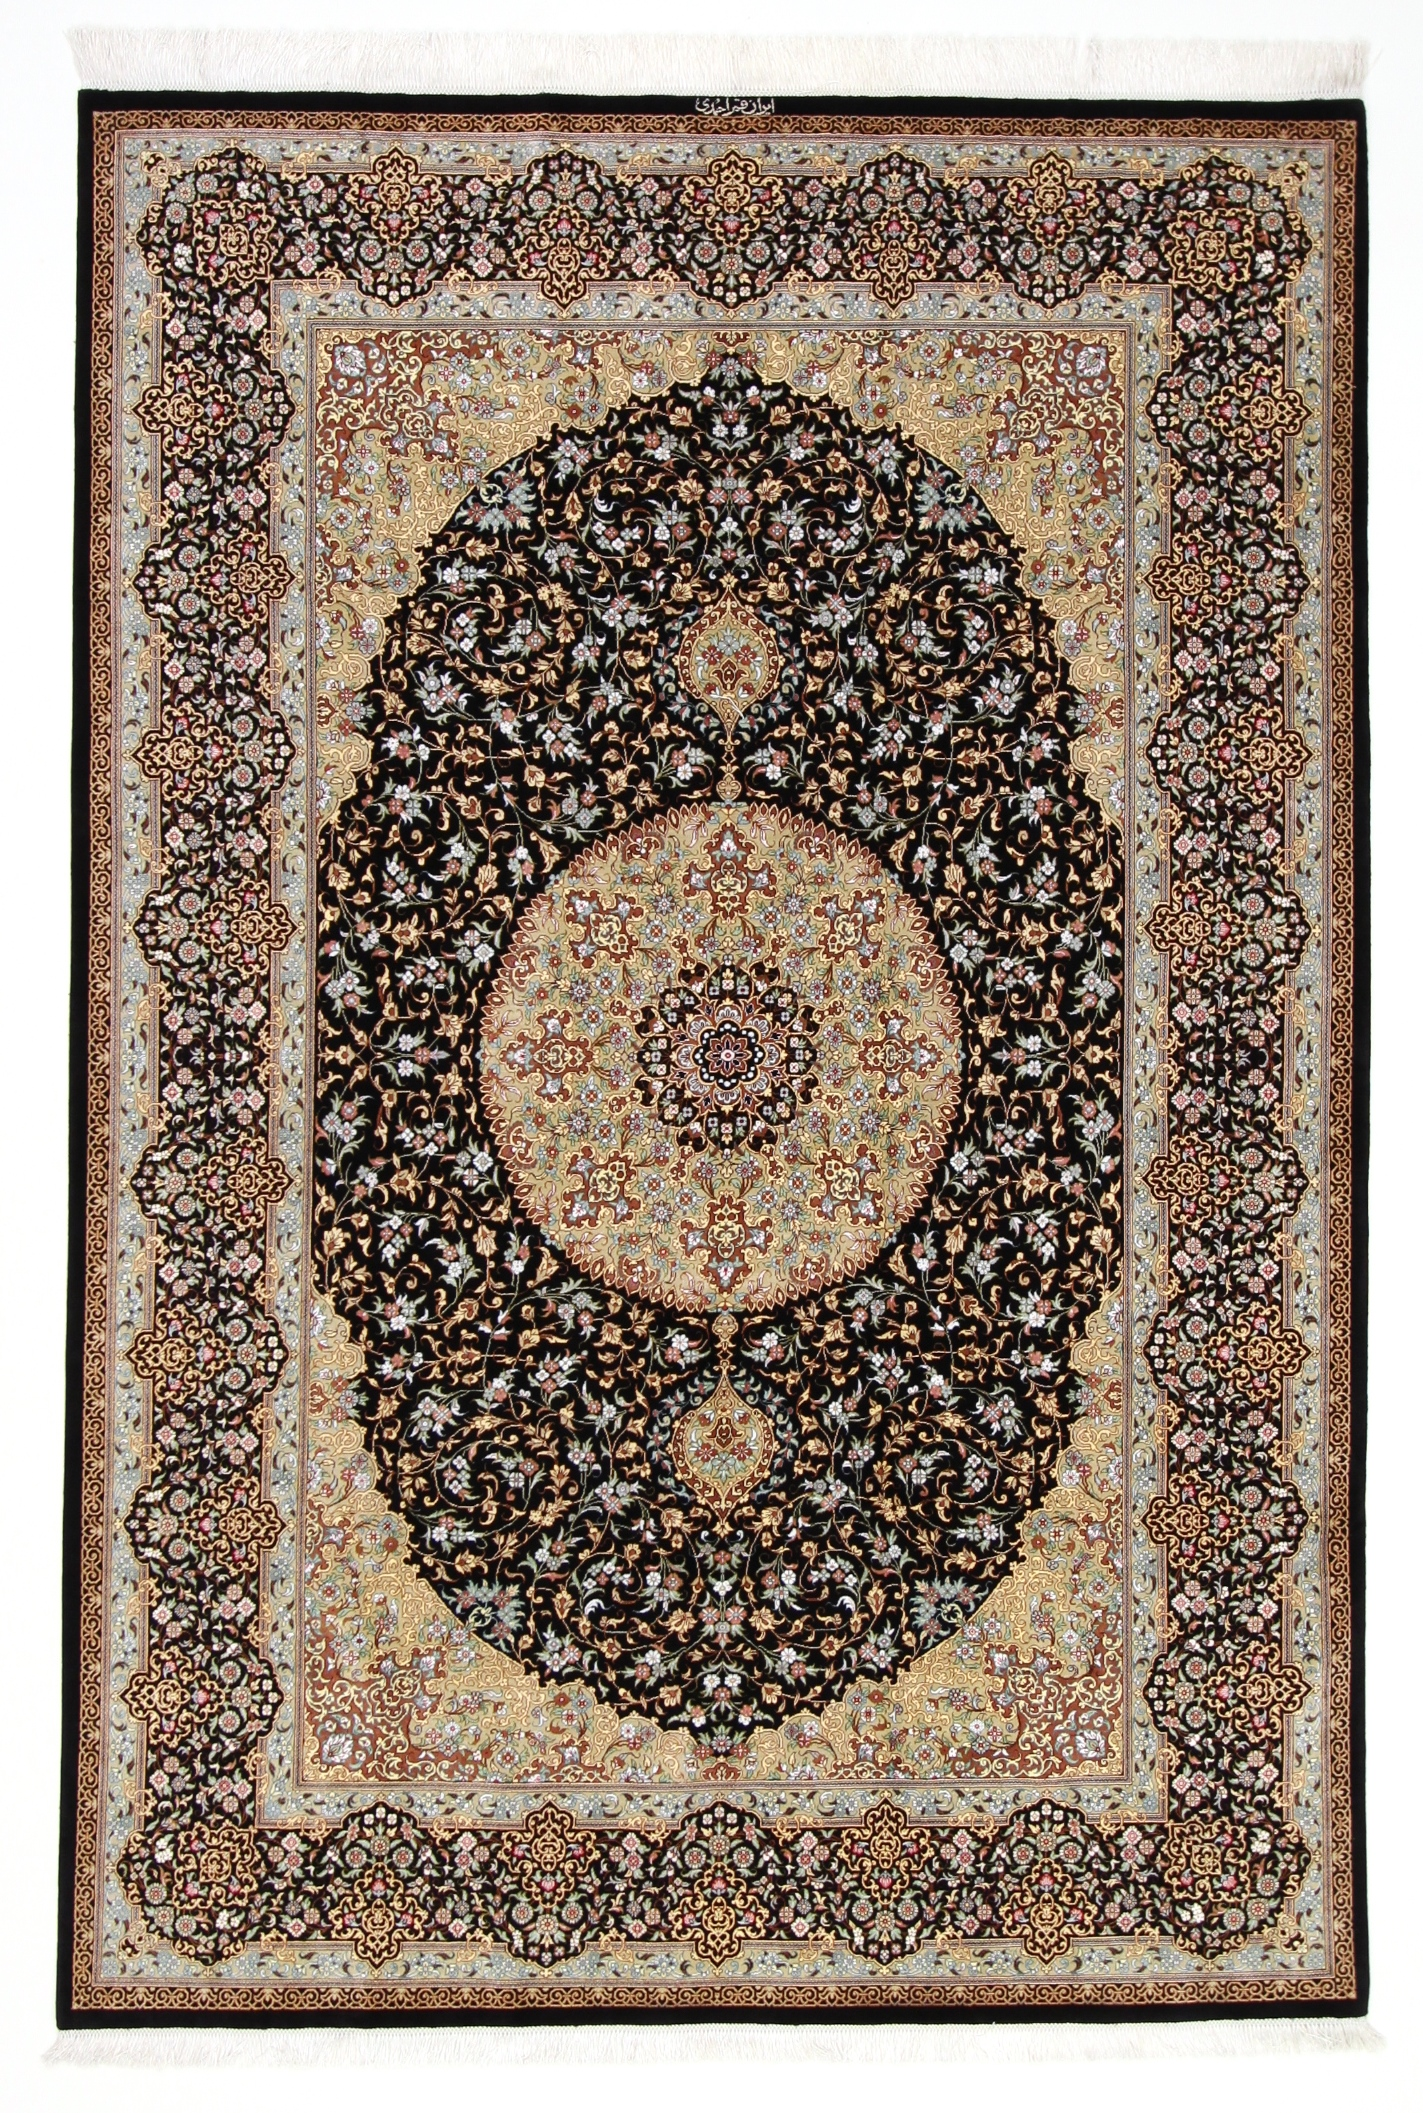 8x5 burgundy colored Qom silk Persian rugs. Pure Silk Qum Persian carpet with dark blue color.